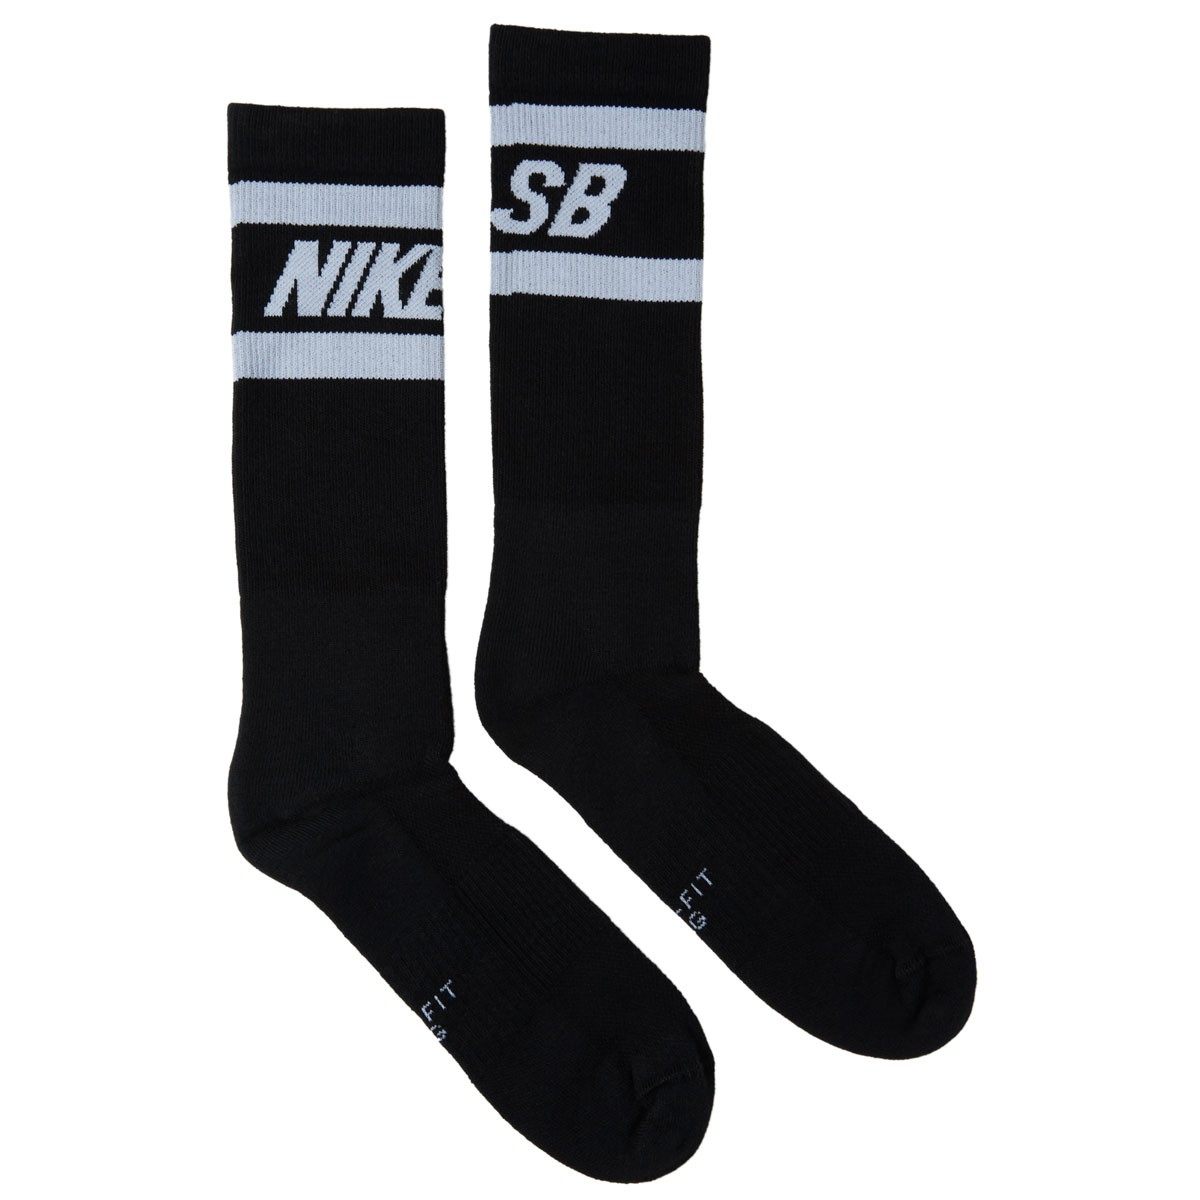 045b4db2ea874a Nike SB Graphic Crew 2 Socks - Black White